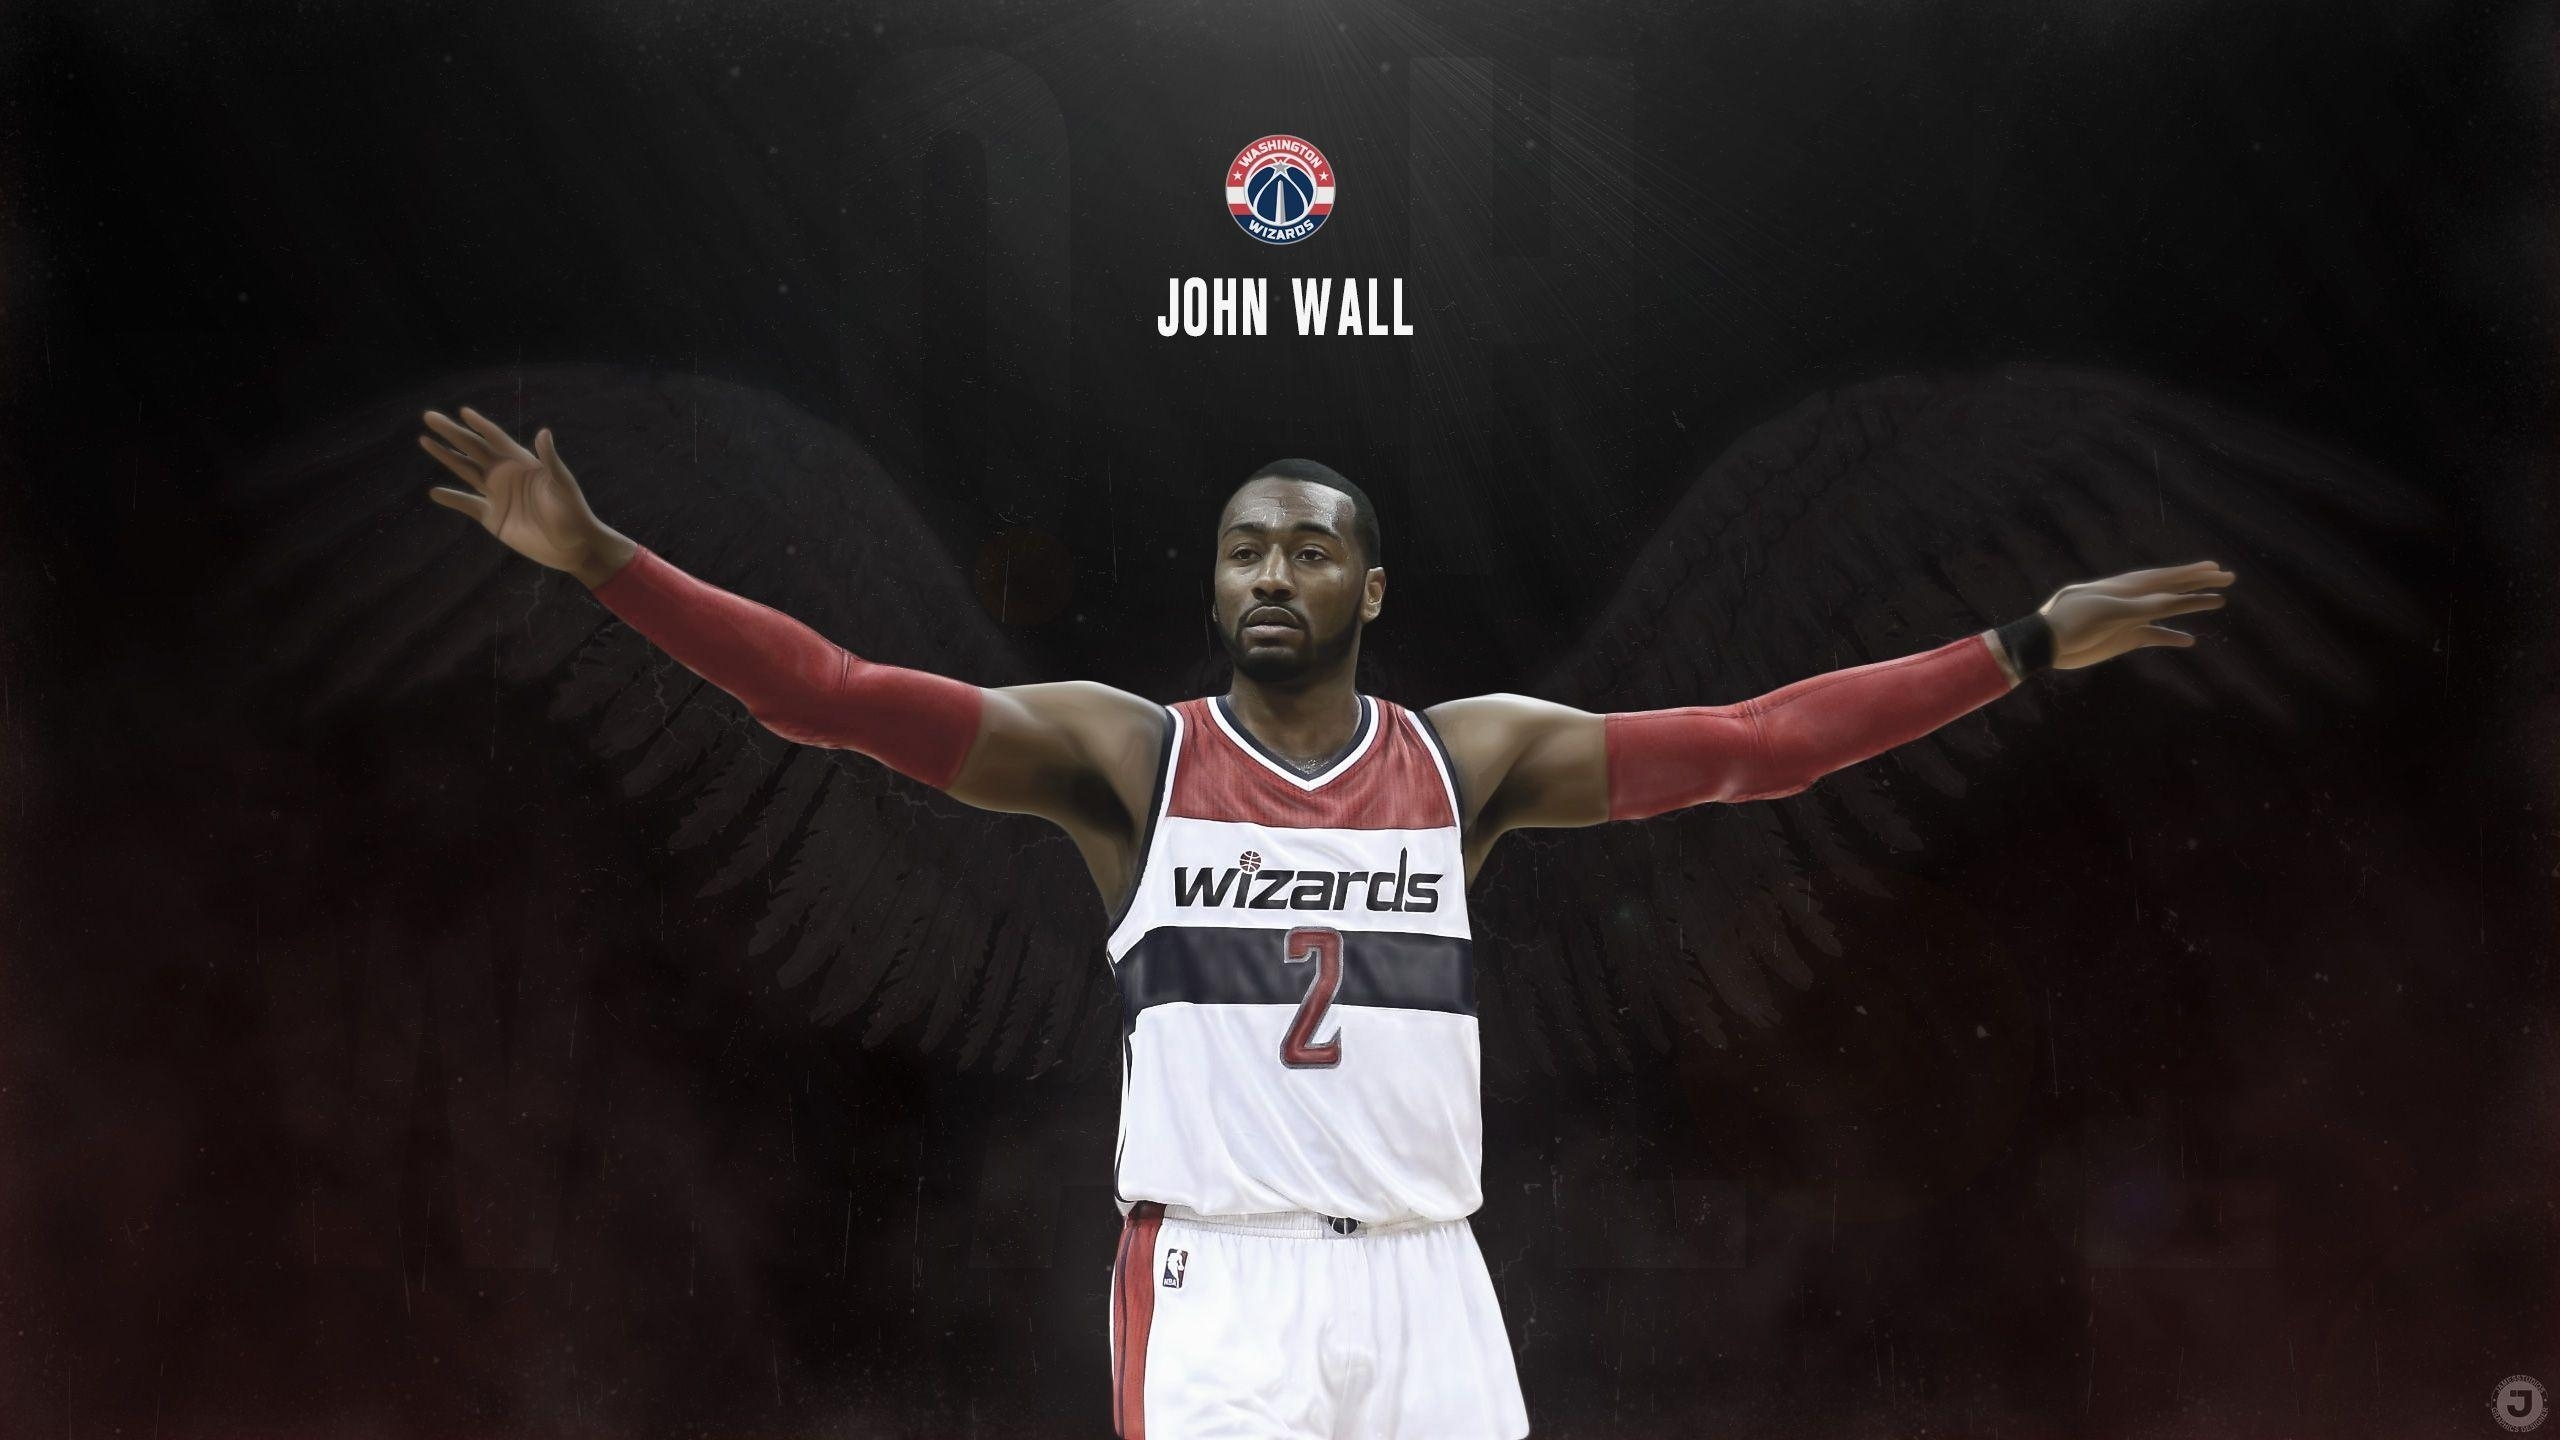 10 Latest John Wall Wallpaper Hd FULL HD 1920×1080 For PC Desktop